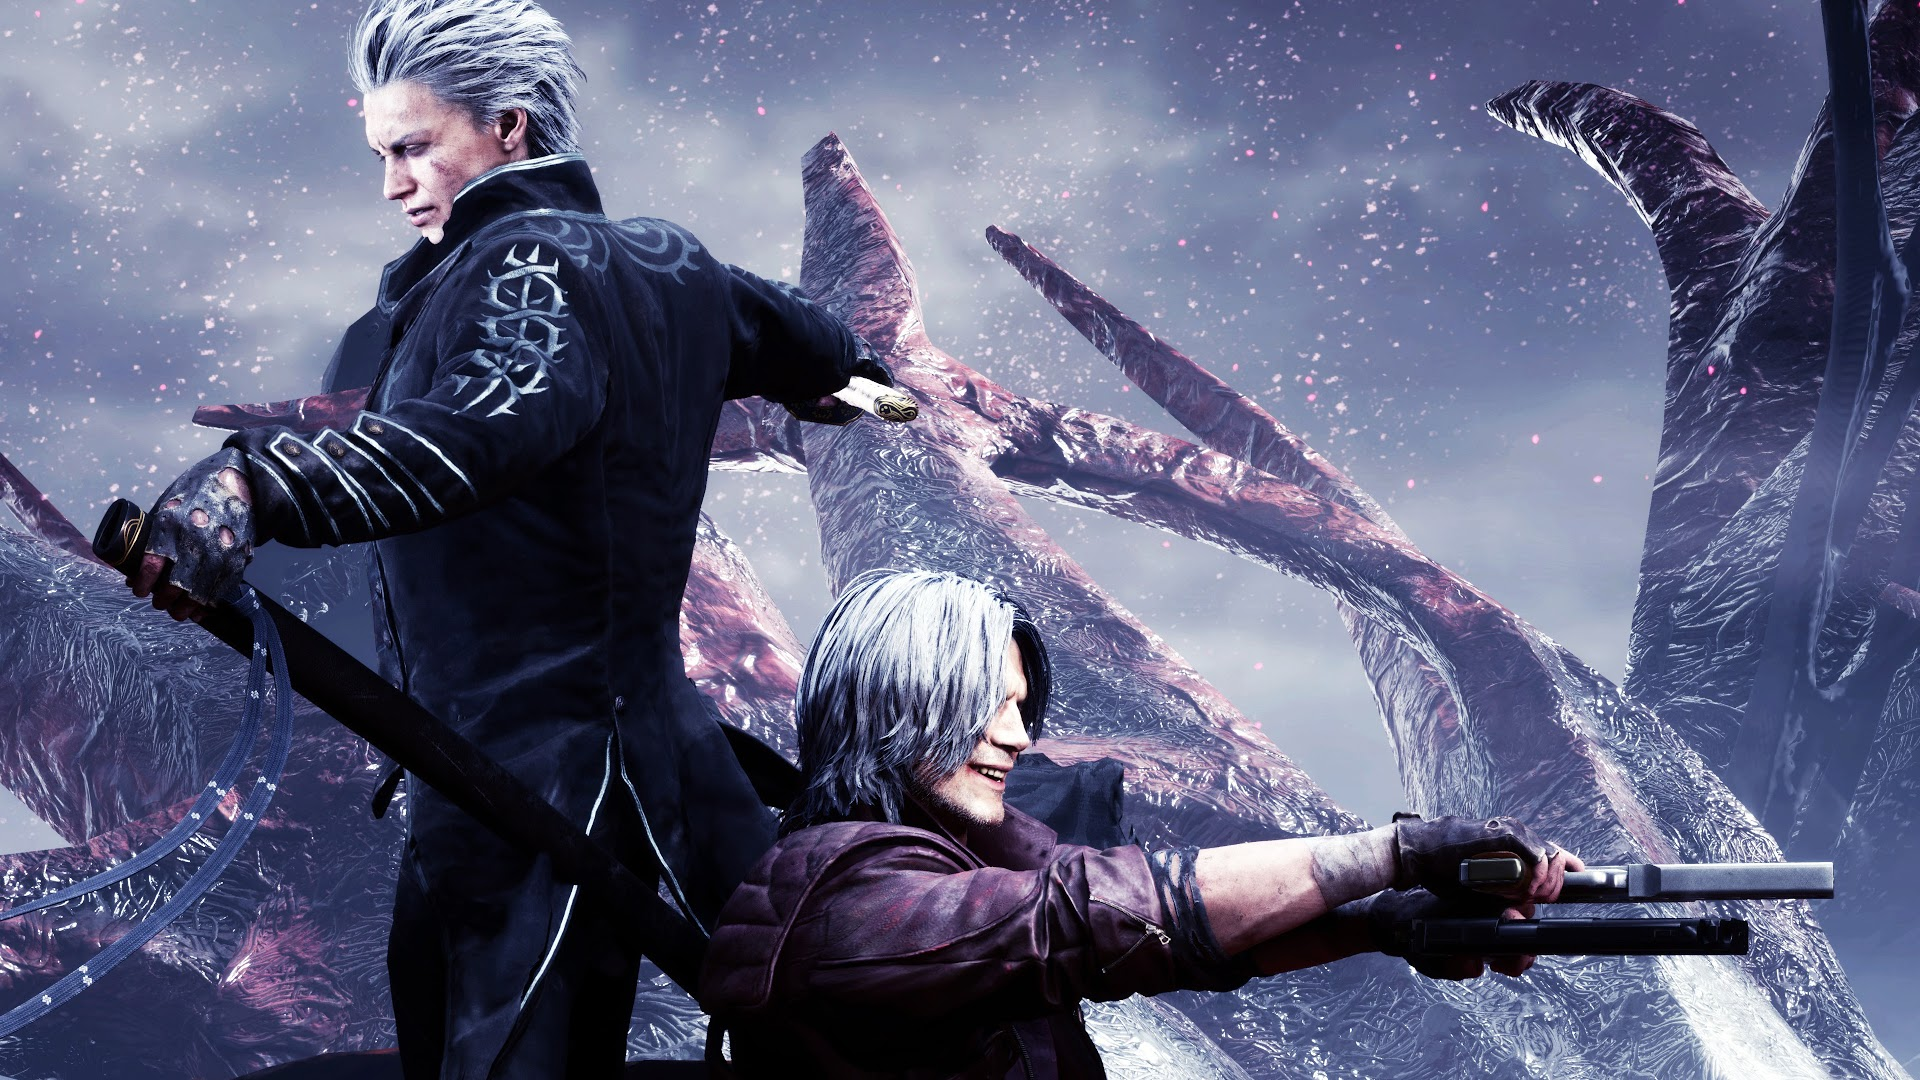 Devil May Cry 5 Vergil Wallpaper Posted By Sarah Tremblay